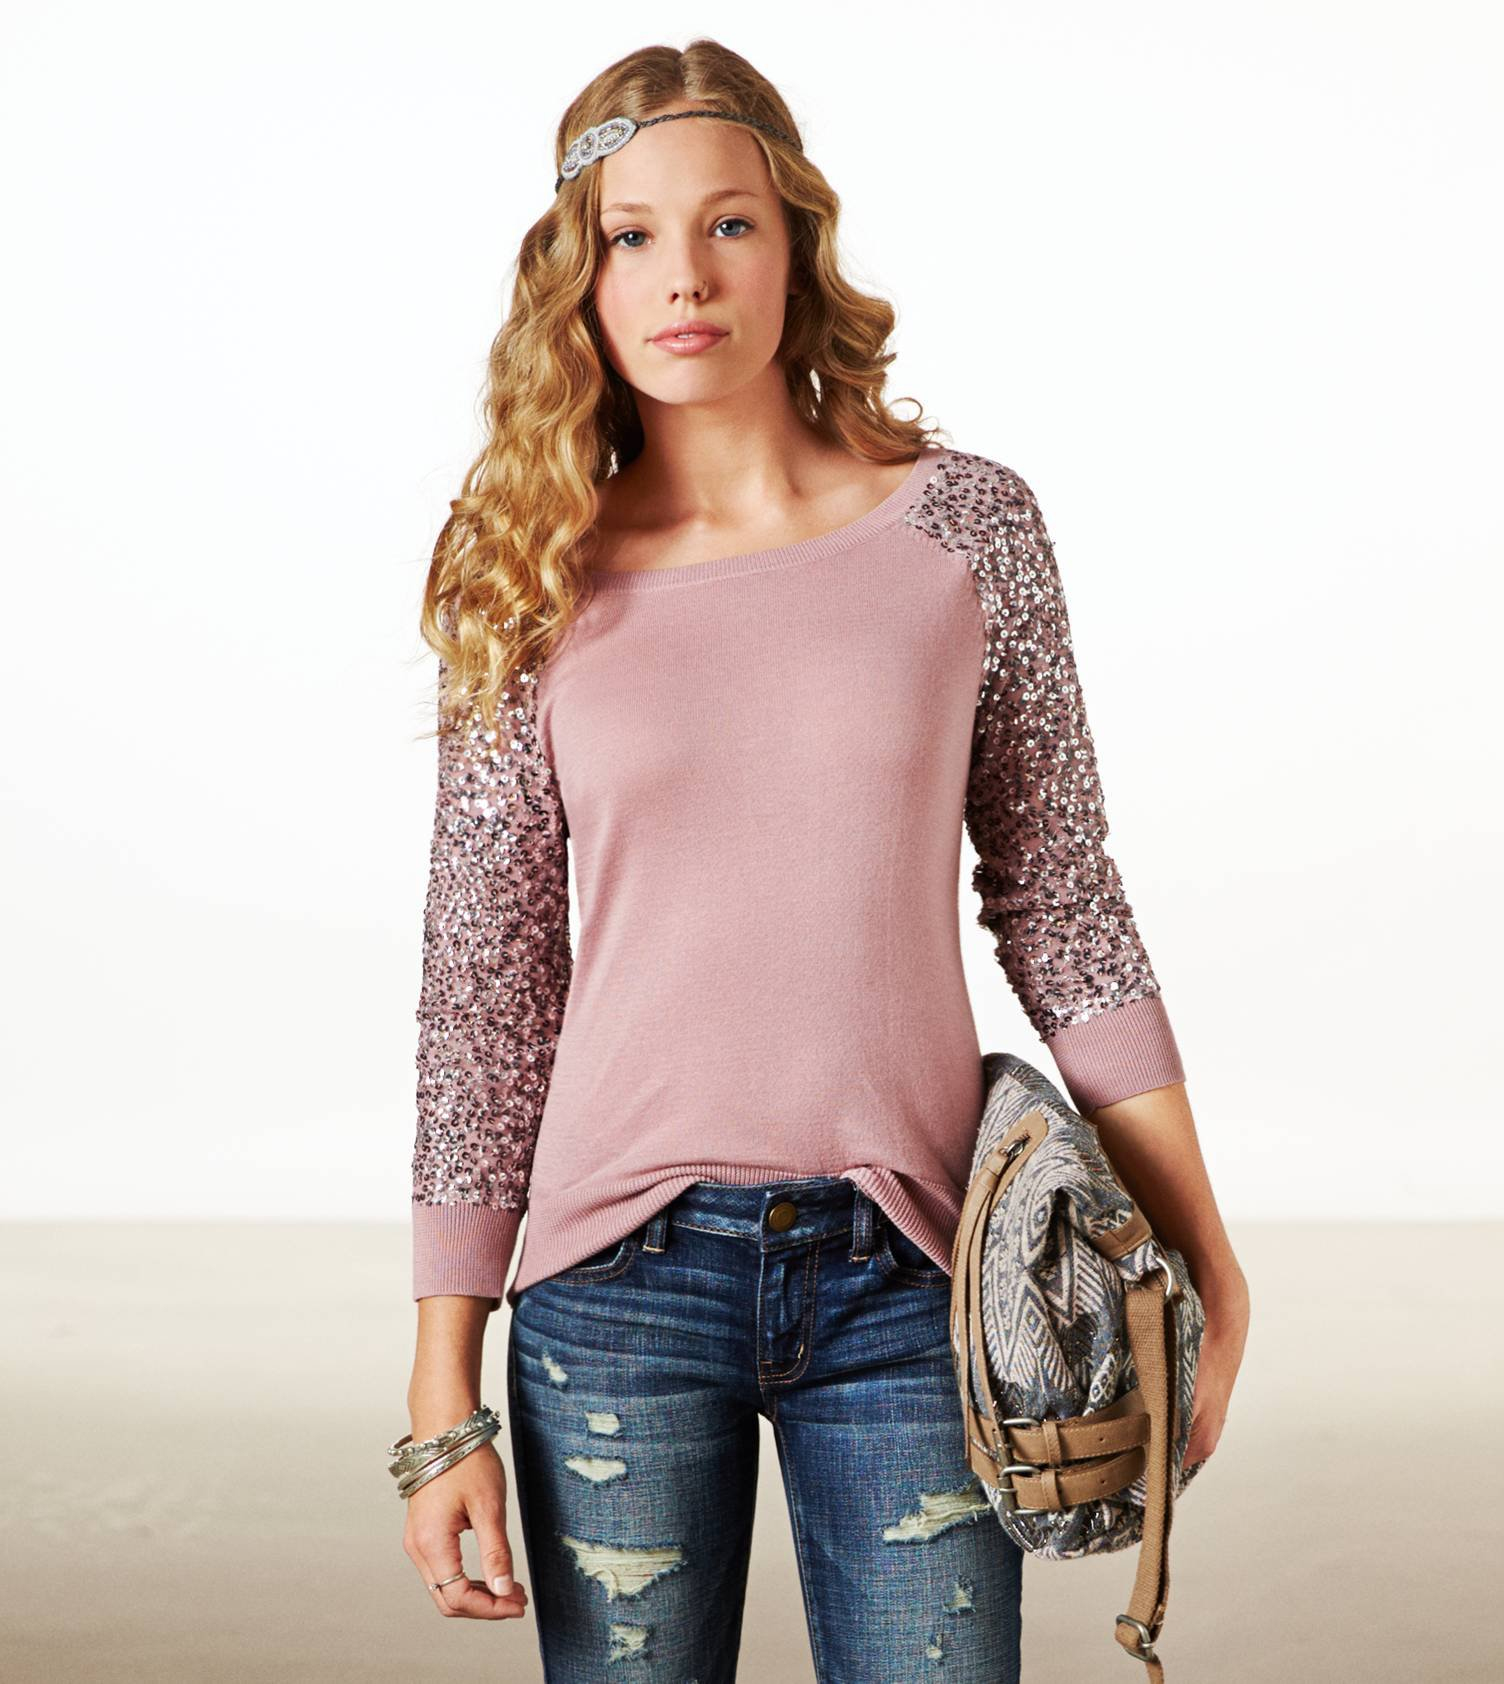 Sequin Cardigan Sweater ($ - $): 30 of items - Shop Sequin Cardigan Sweater from ALL your favorite stores & find HUGE SAVINGS up to 80% off Sequin Cardigan Sweater, including GREAT DEALS like magascioni Sweaters | Magascioni Navy Blue Sequins Cardigan Sweater.